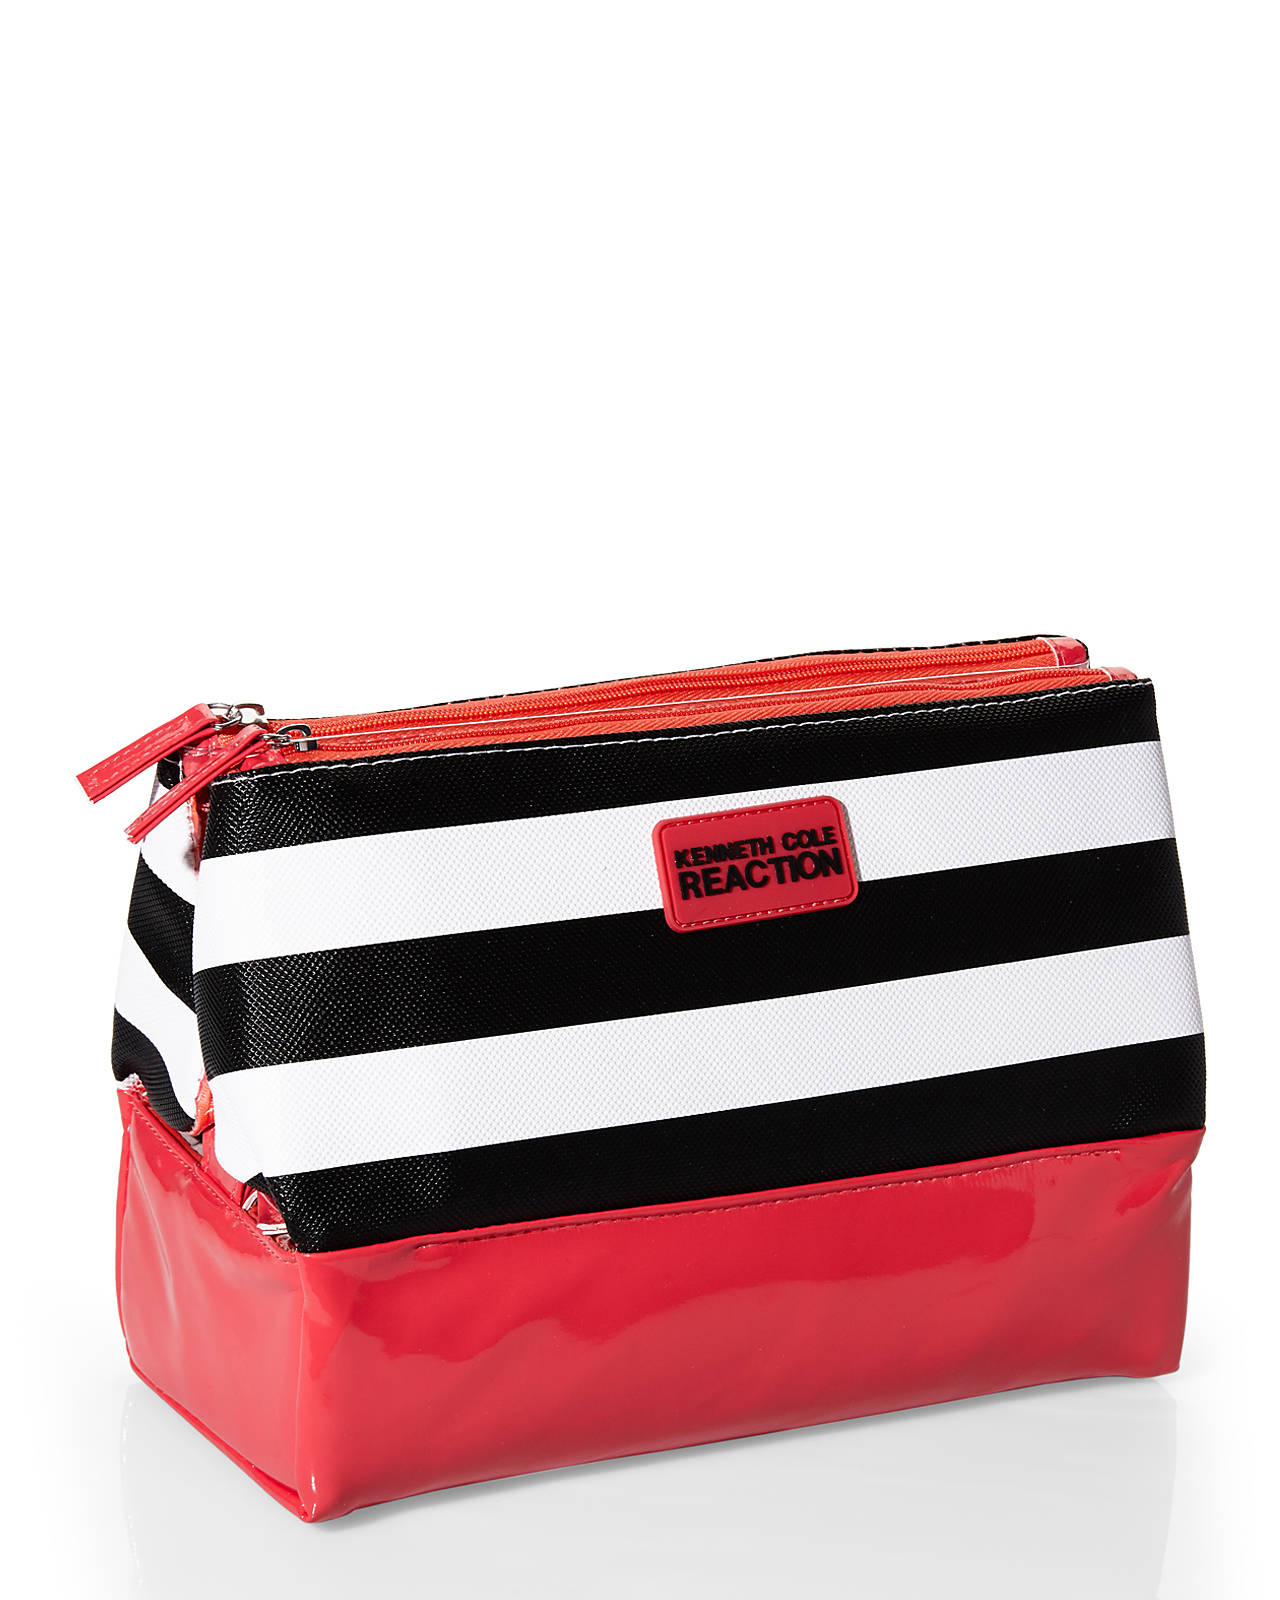 Lyst - Kenneth Cole Reaction 3-compartment Striped Cosmetic Bag in Black b1a6f773029d5